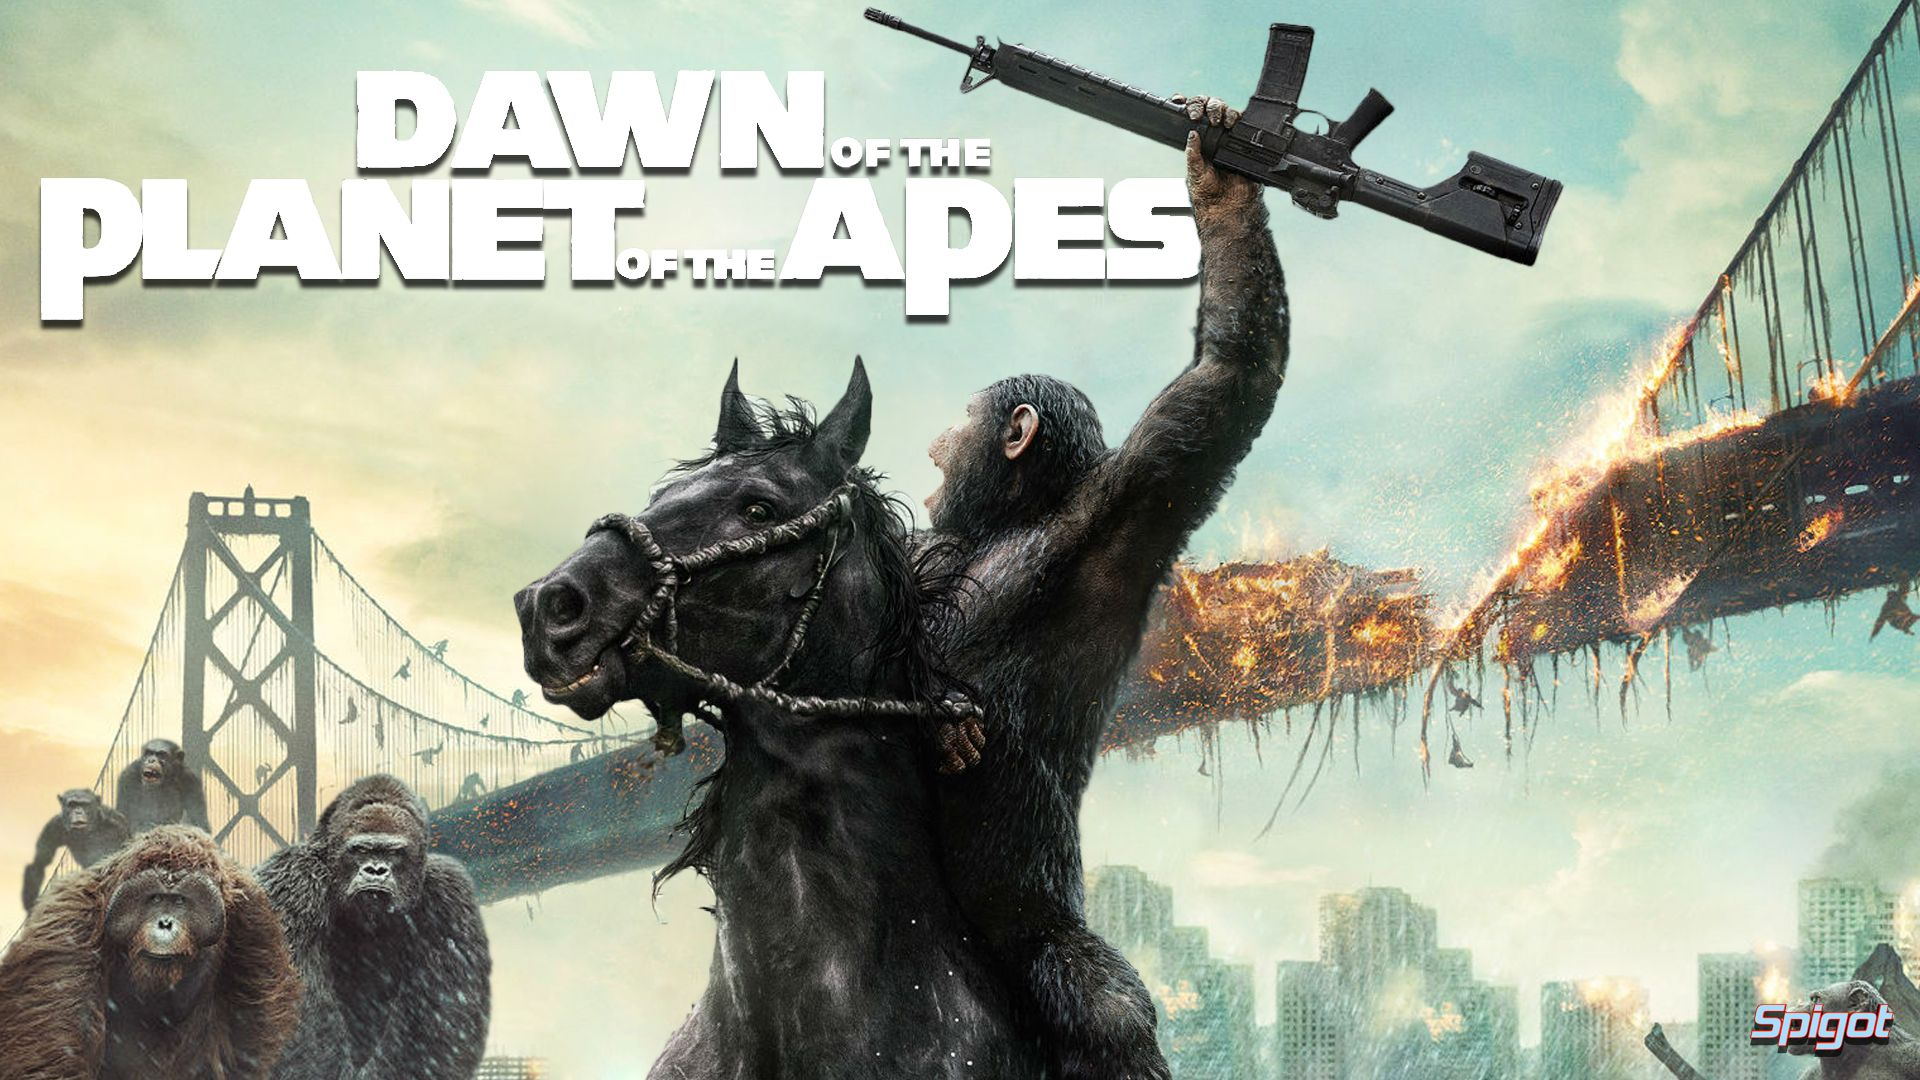 Dawn Of The Planets Of The Apes - Brains Over Brawn: Transcending the Summer Blockbuster - http://bit.ly/1nX4K7C